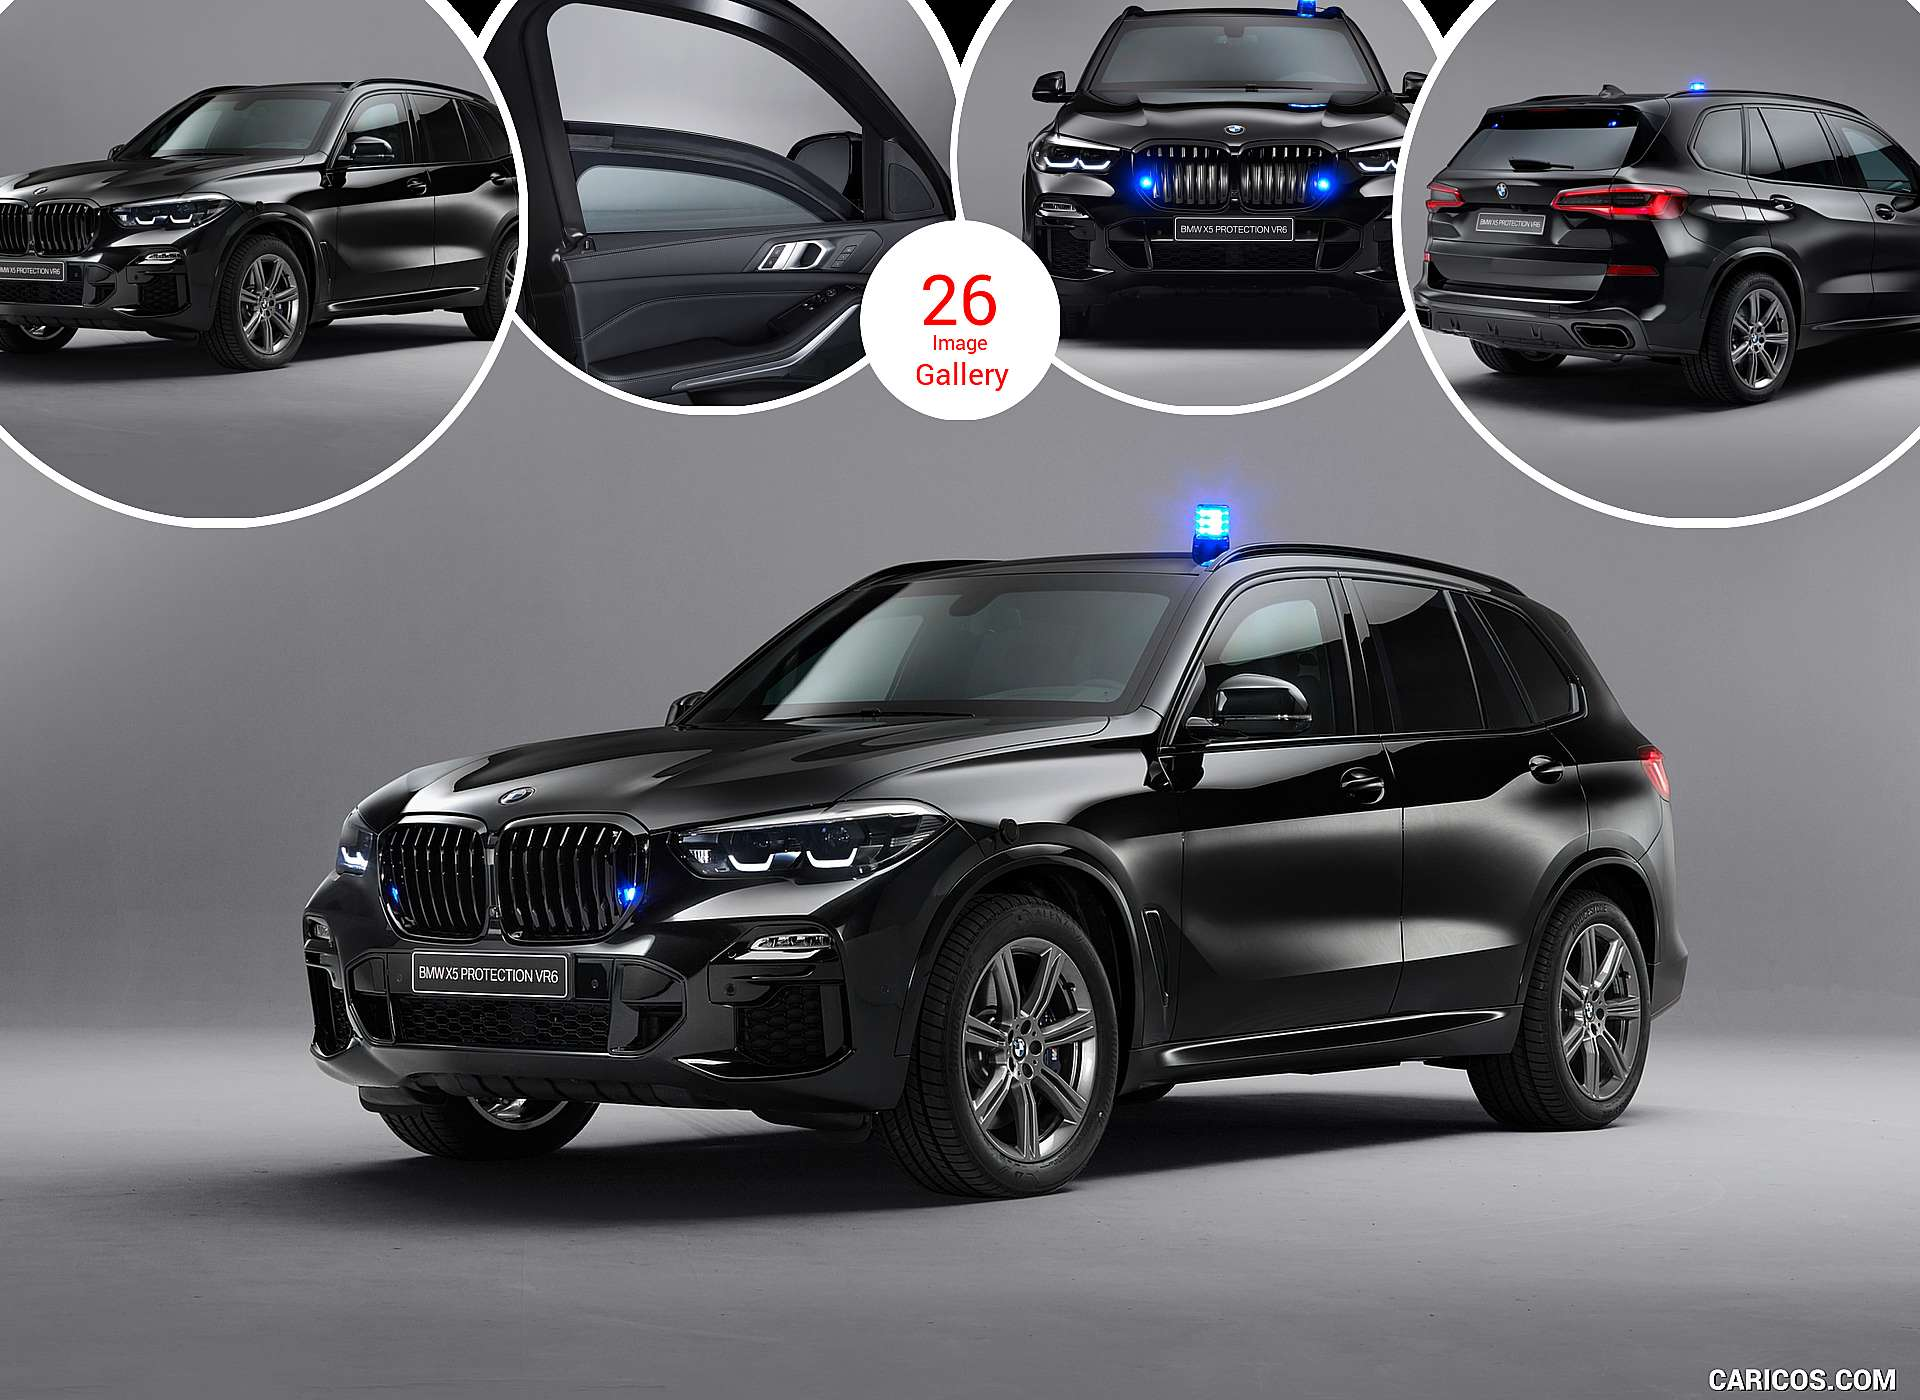 2020 BMW X5 Protection VR6 (Armored Vehicle)